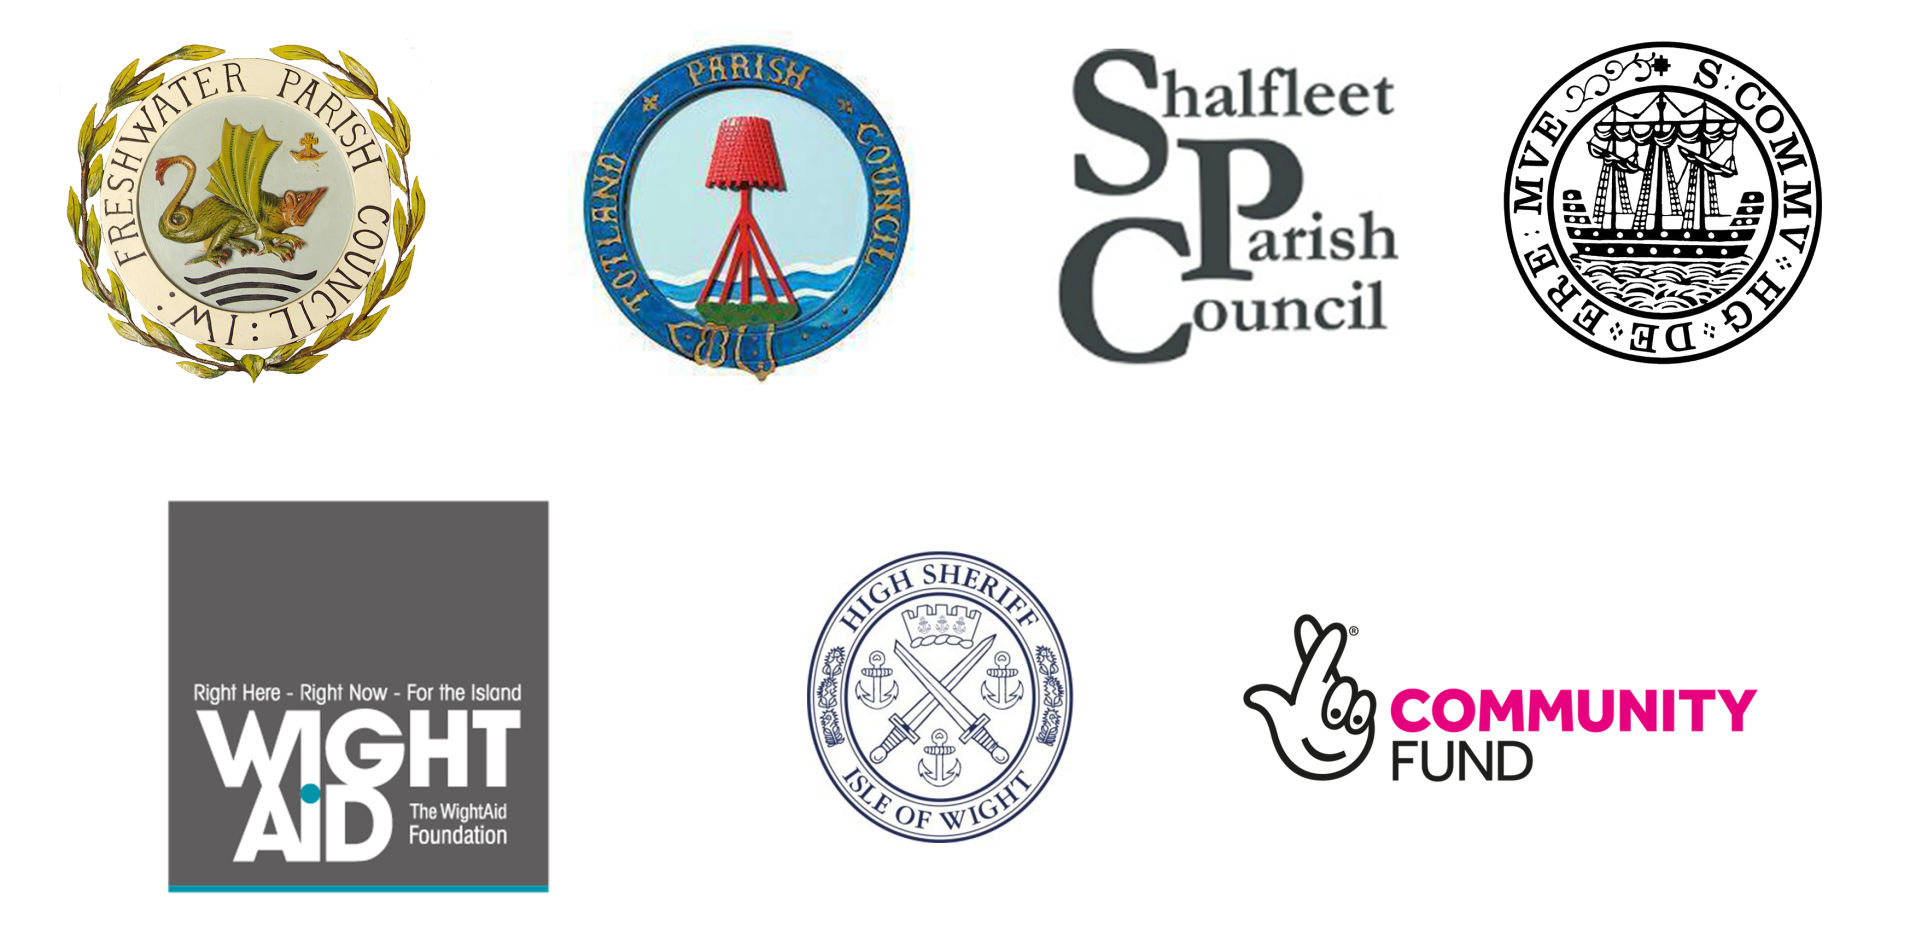 West Wight Timebank funding partners image. Freshwater Parish Council, Totland Parish Council, Shalfleet Parish Council, Wight Aid, Isle of Wight High Sherrif and the National Lottery Community Fund